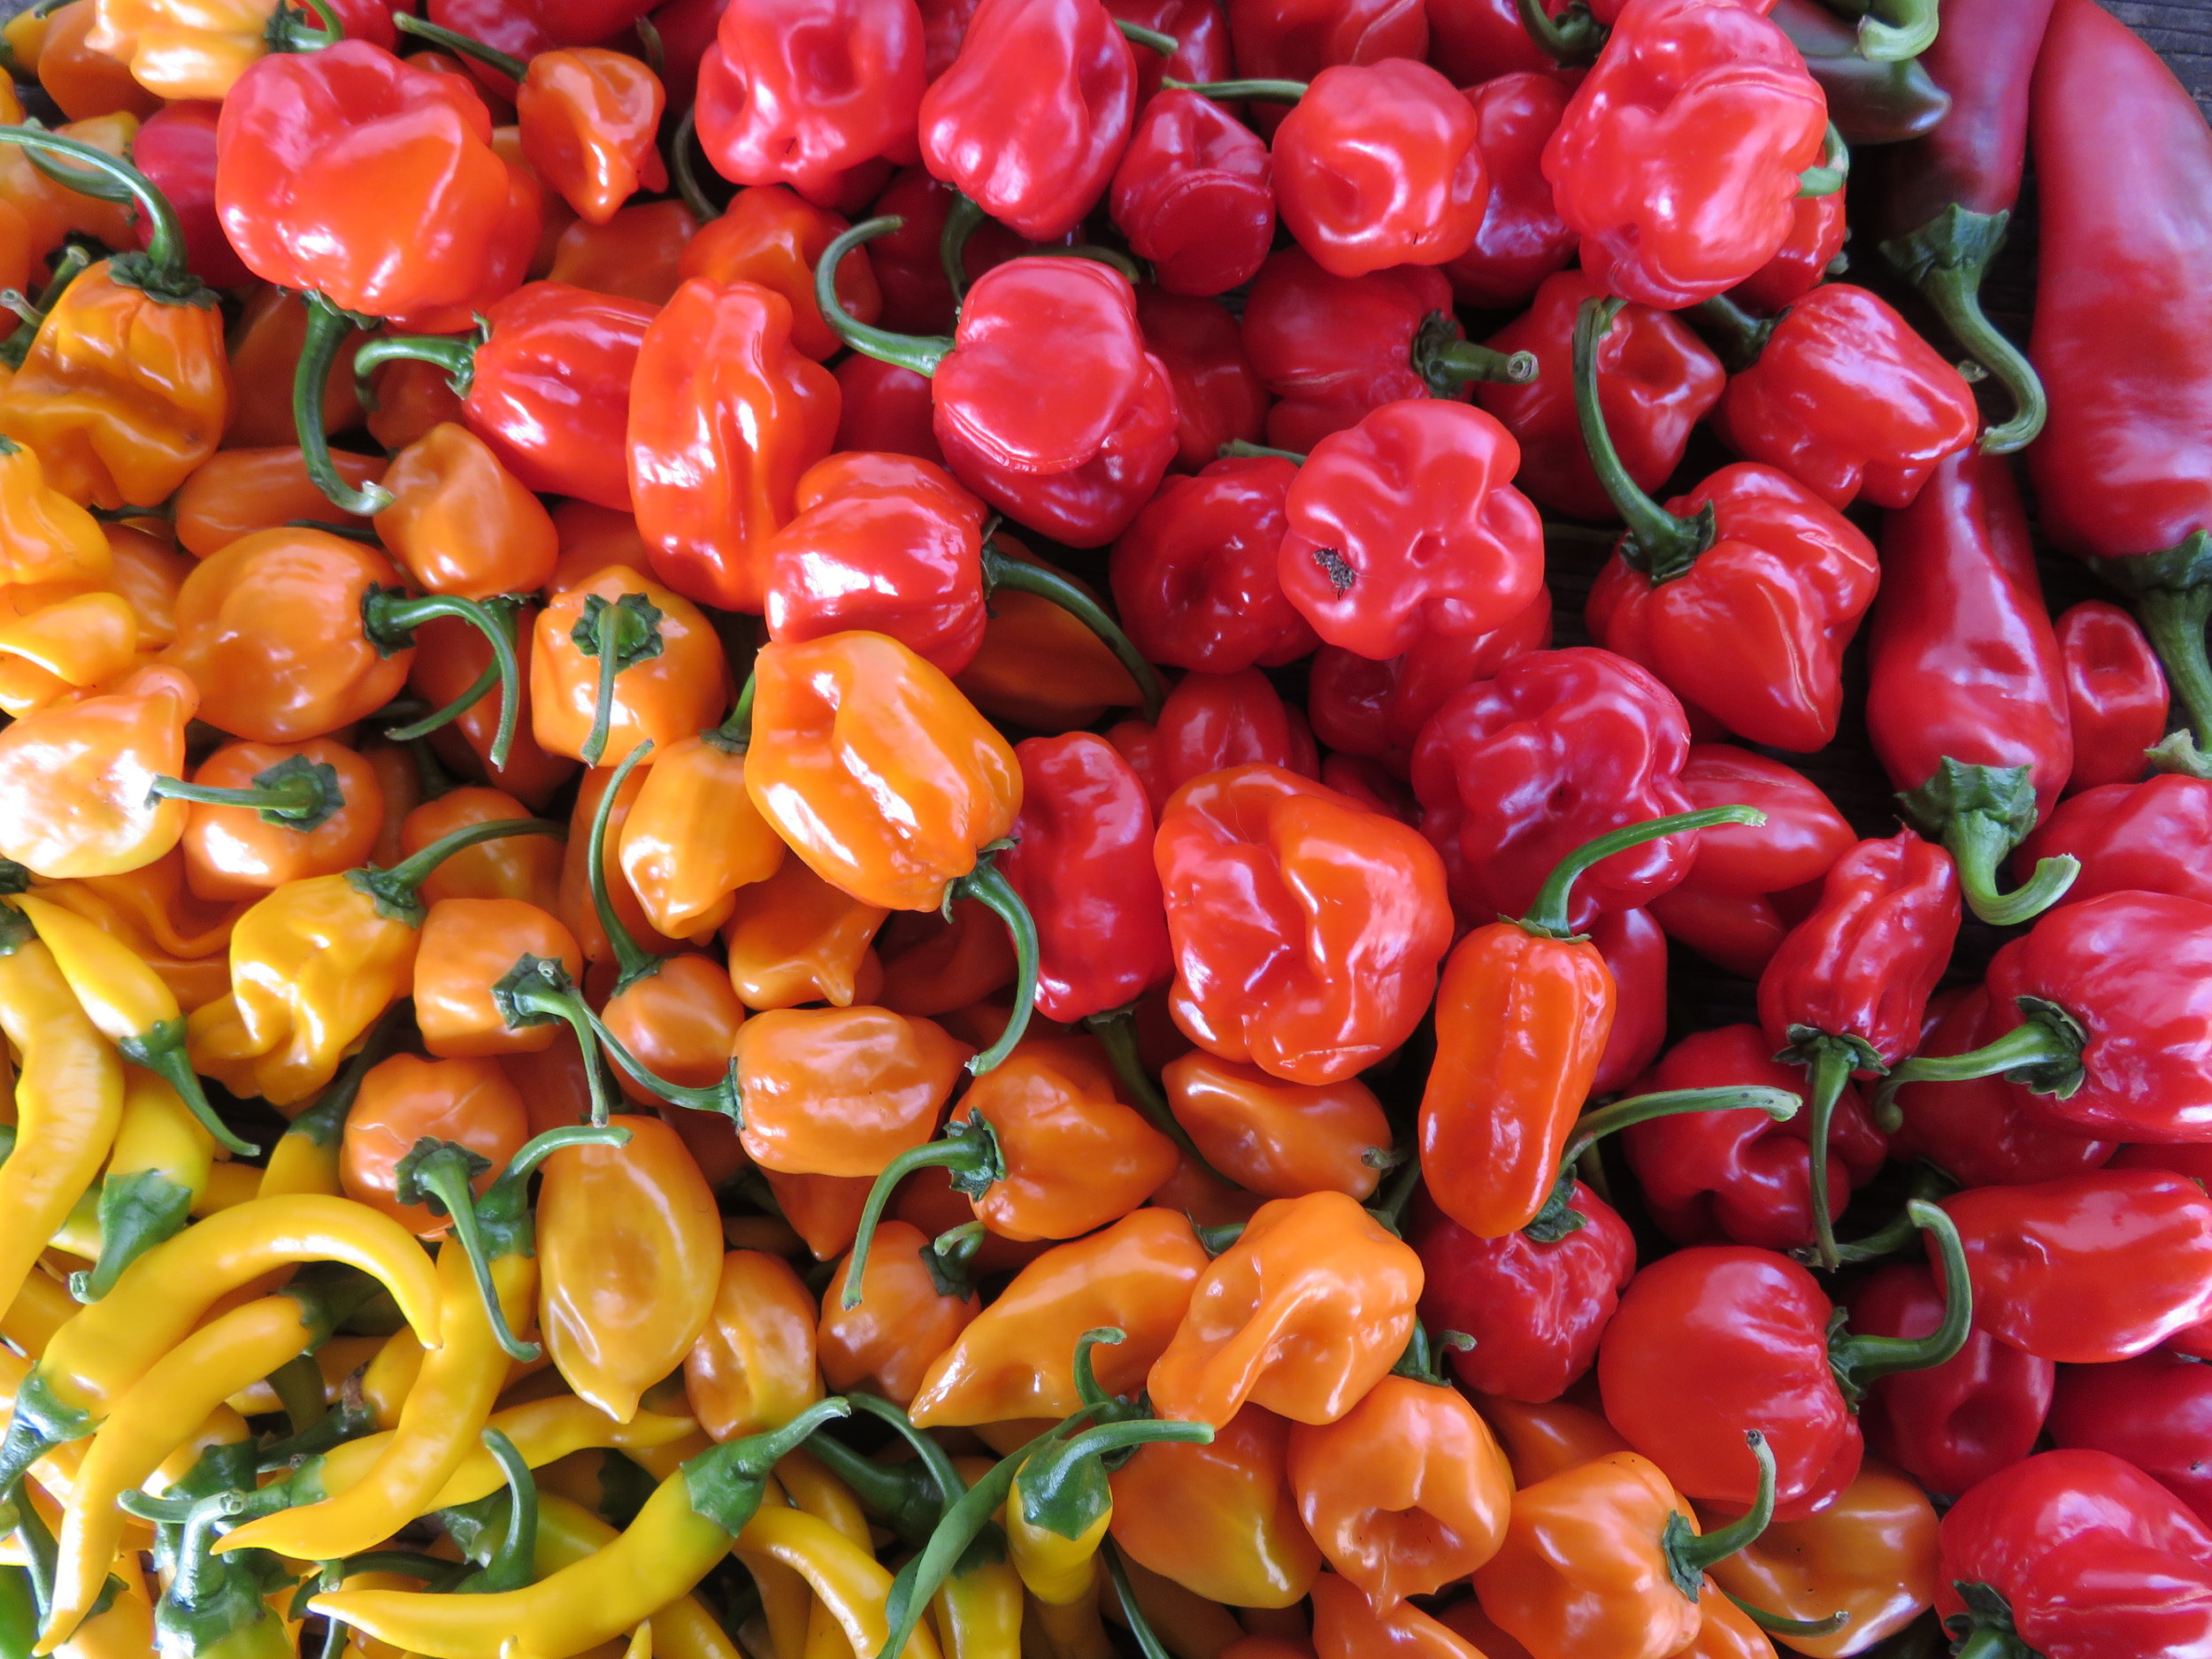 Did you know that we grew more than 10 different kinds of peppers on the farm this year?